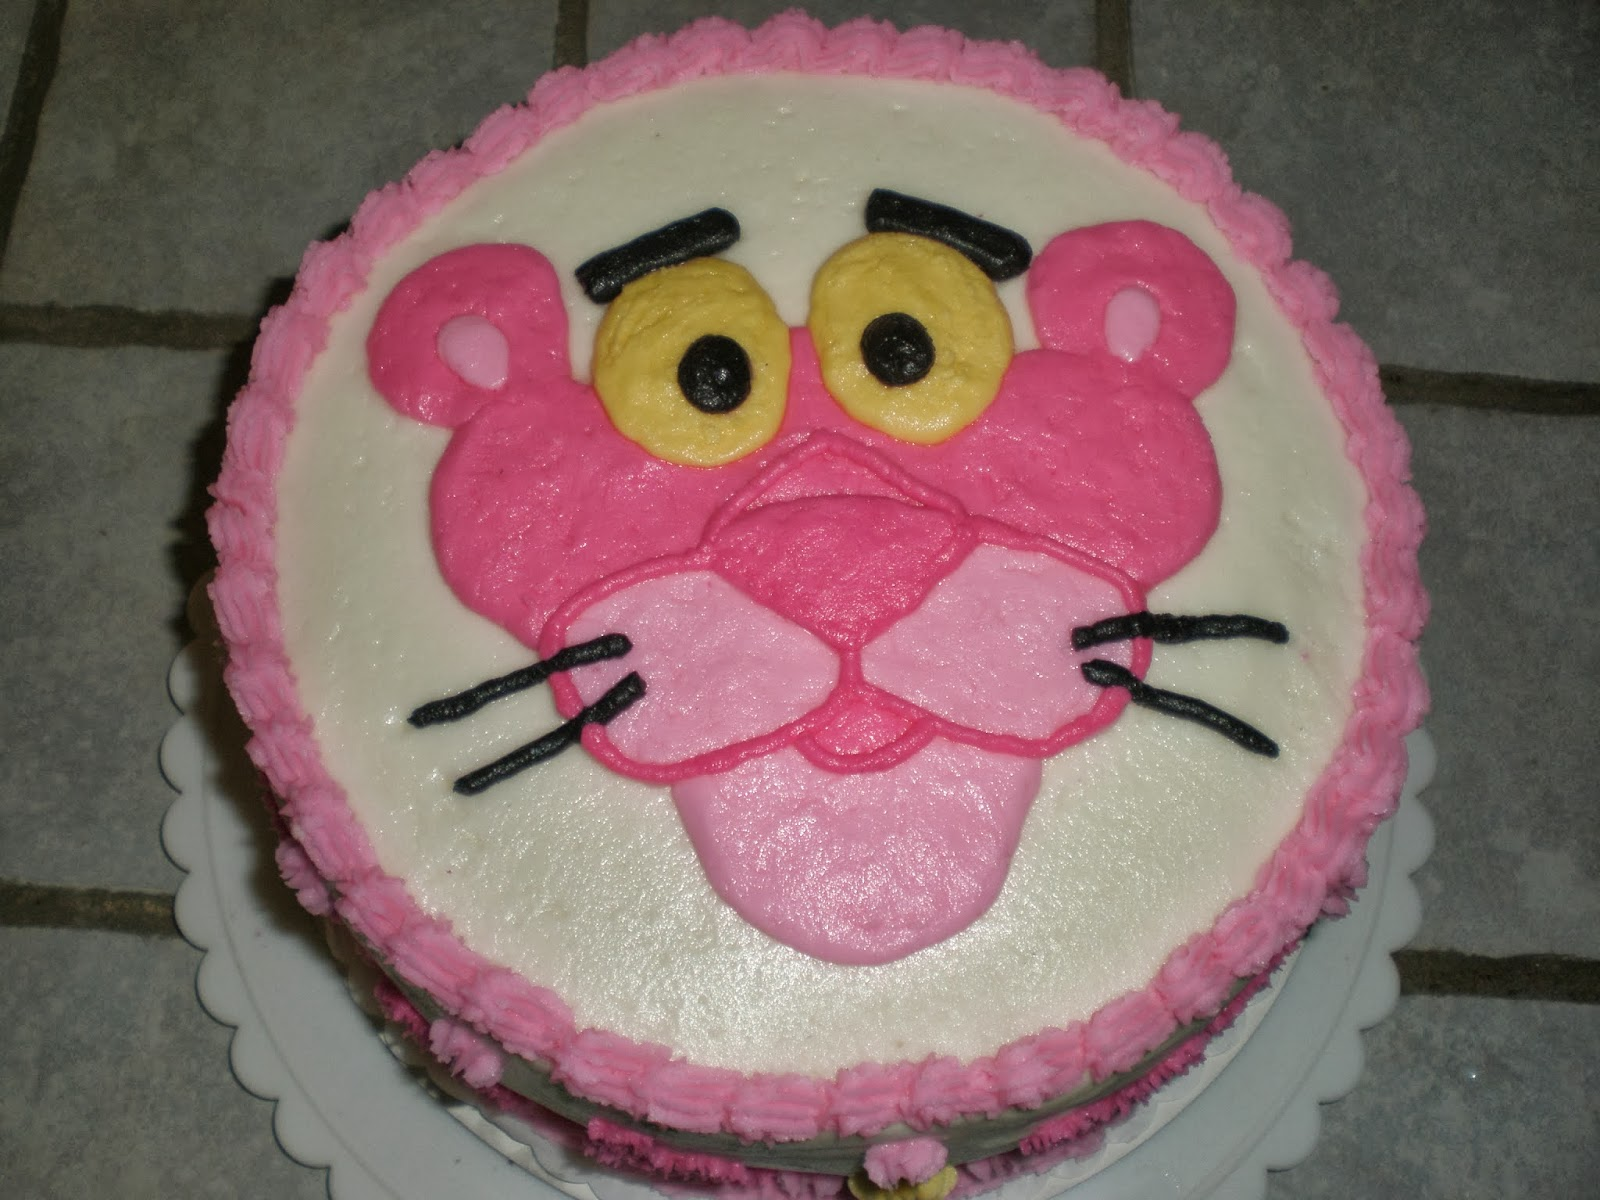 Cakes by Mindy: Pink Panther Cake 9